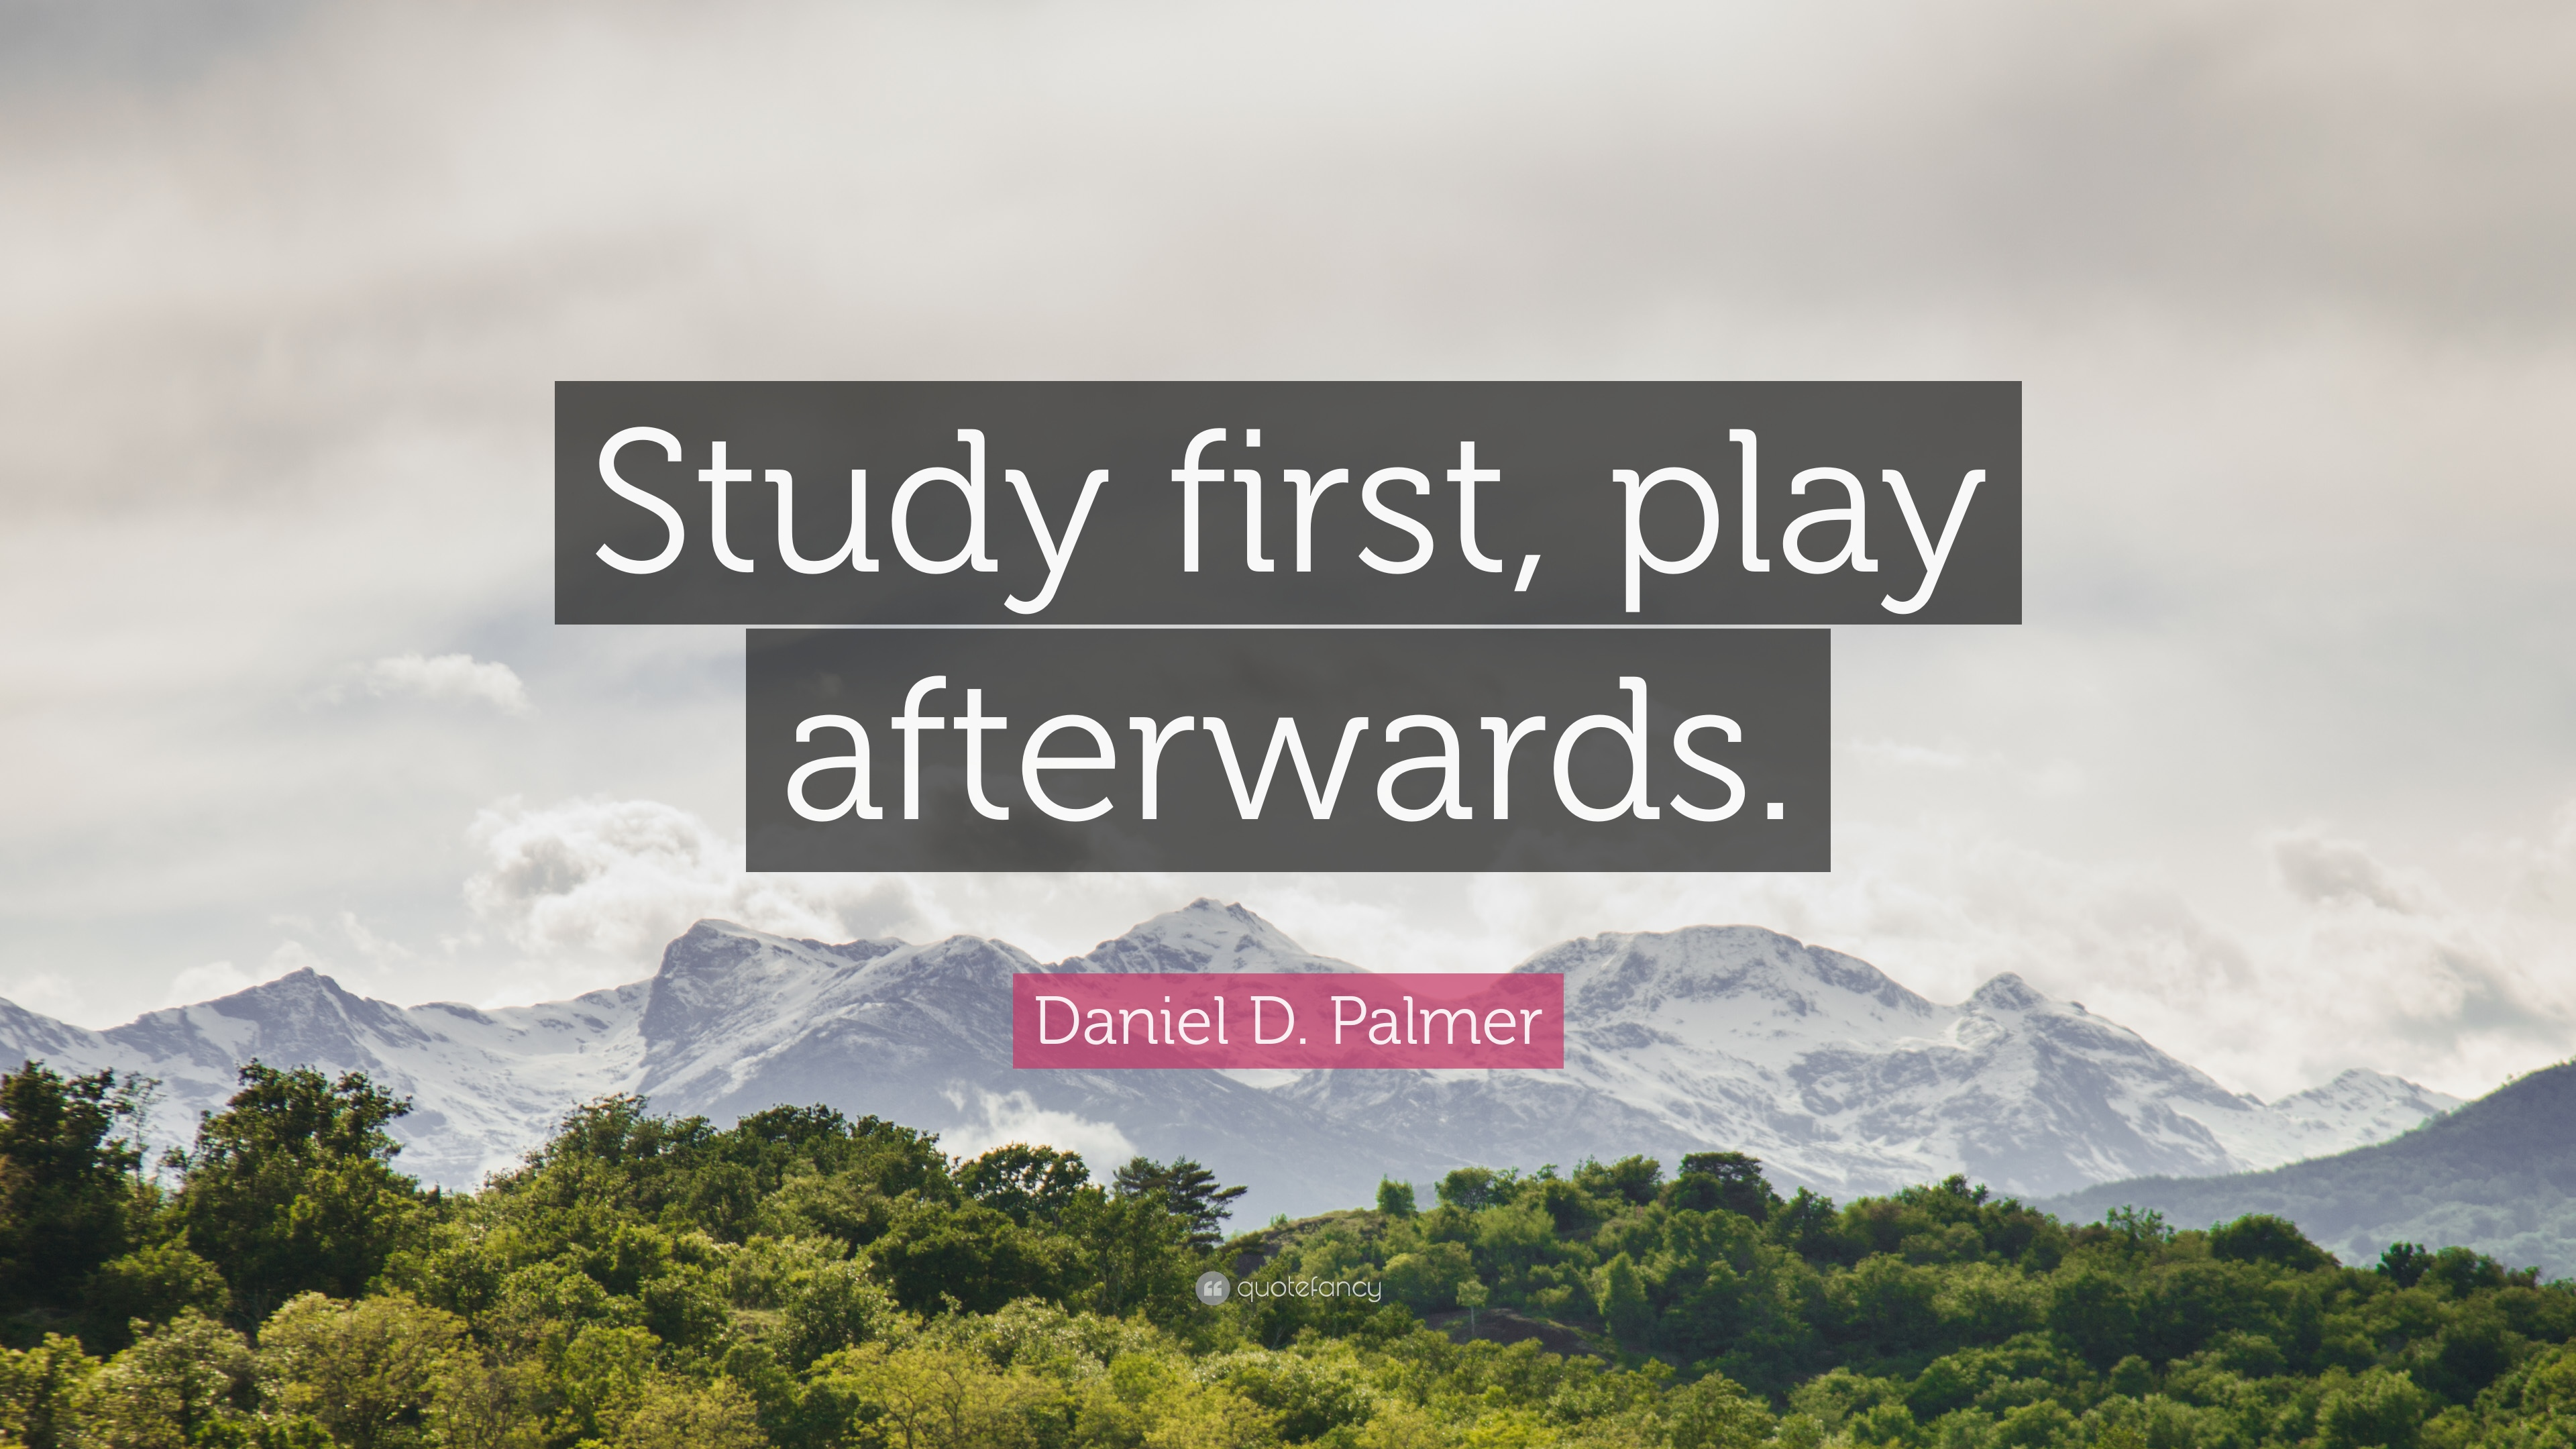 Study Quotes First Play Afterwards Daniel D Palmer